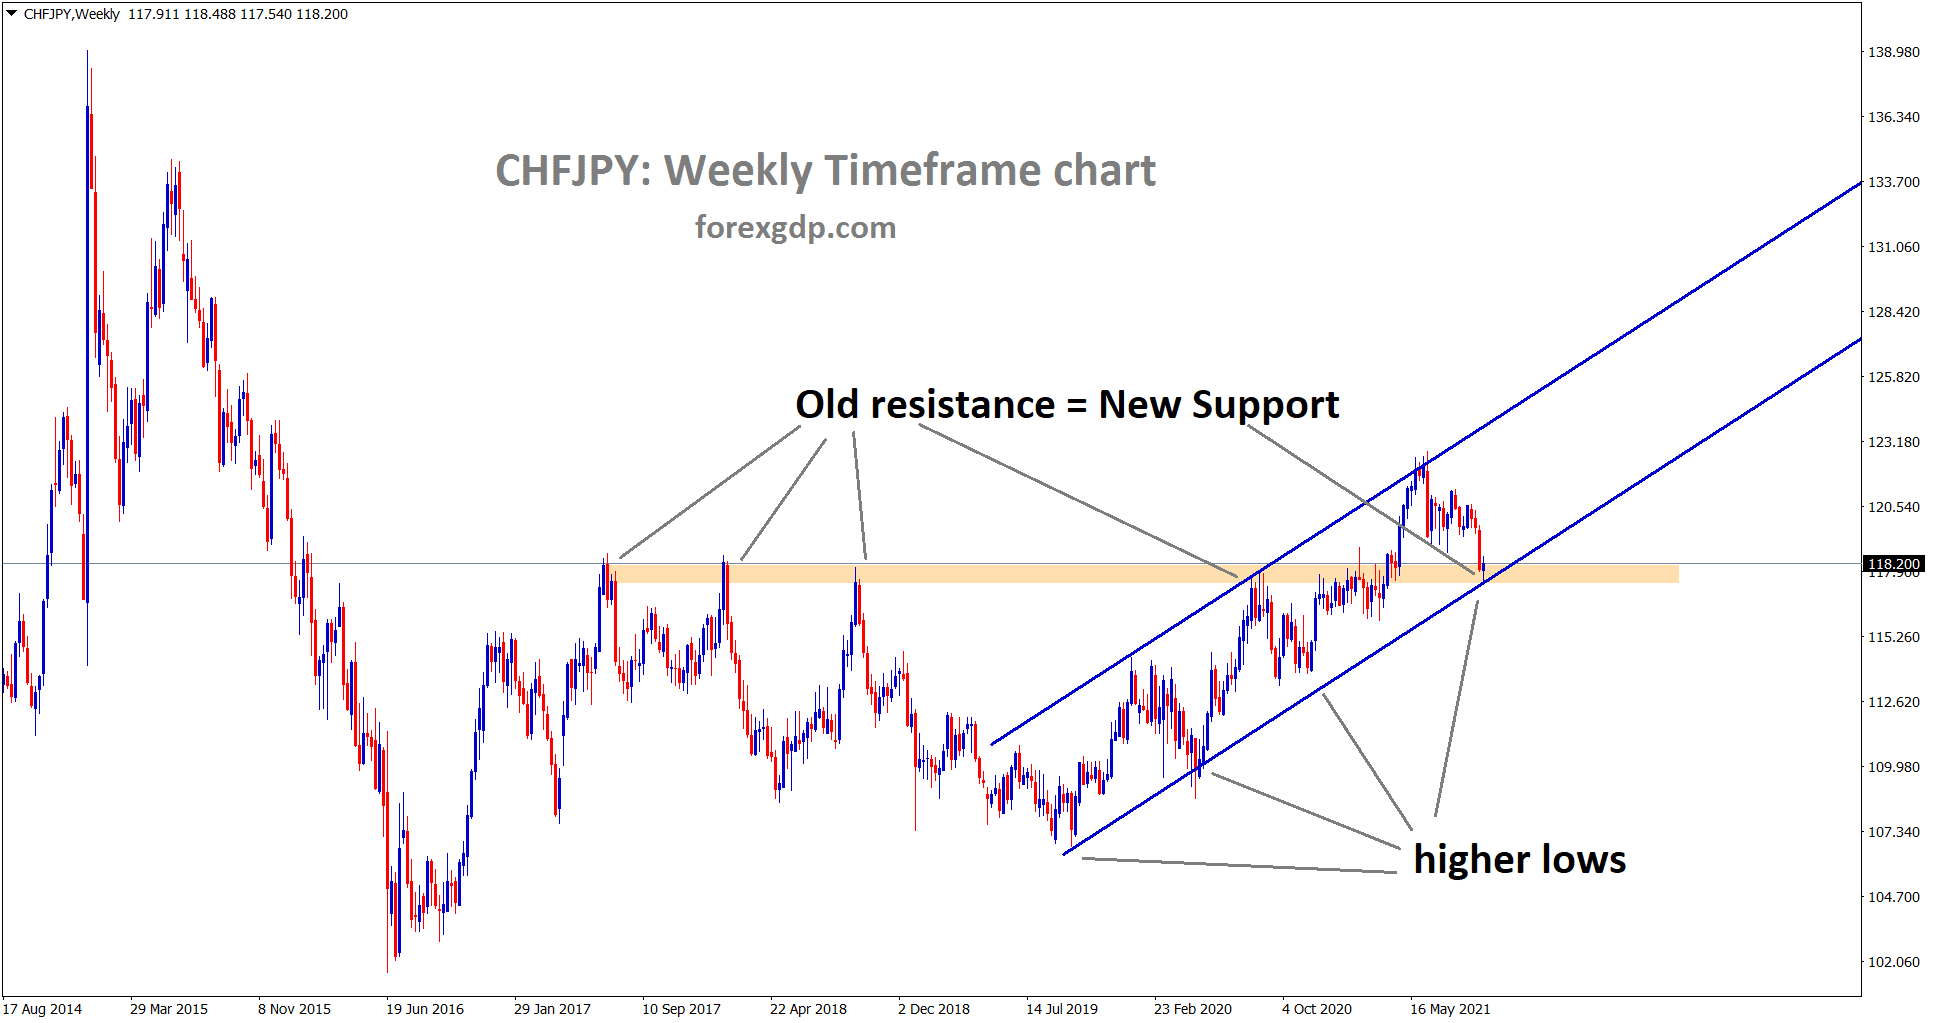 CHFJPY is standing now at the Old resistance which may have